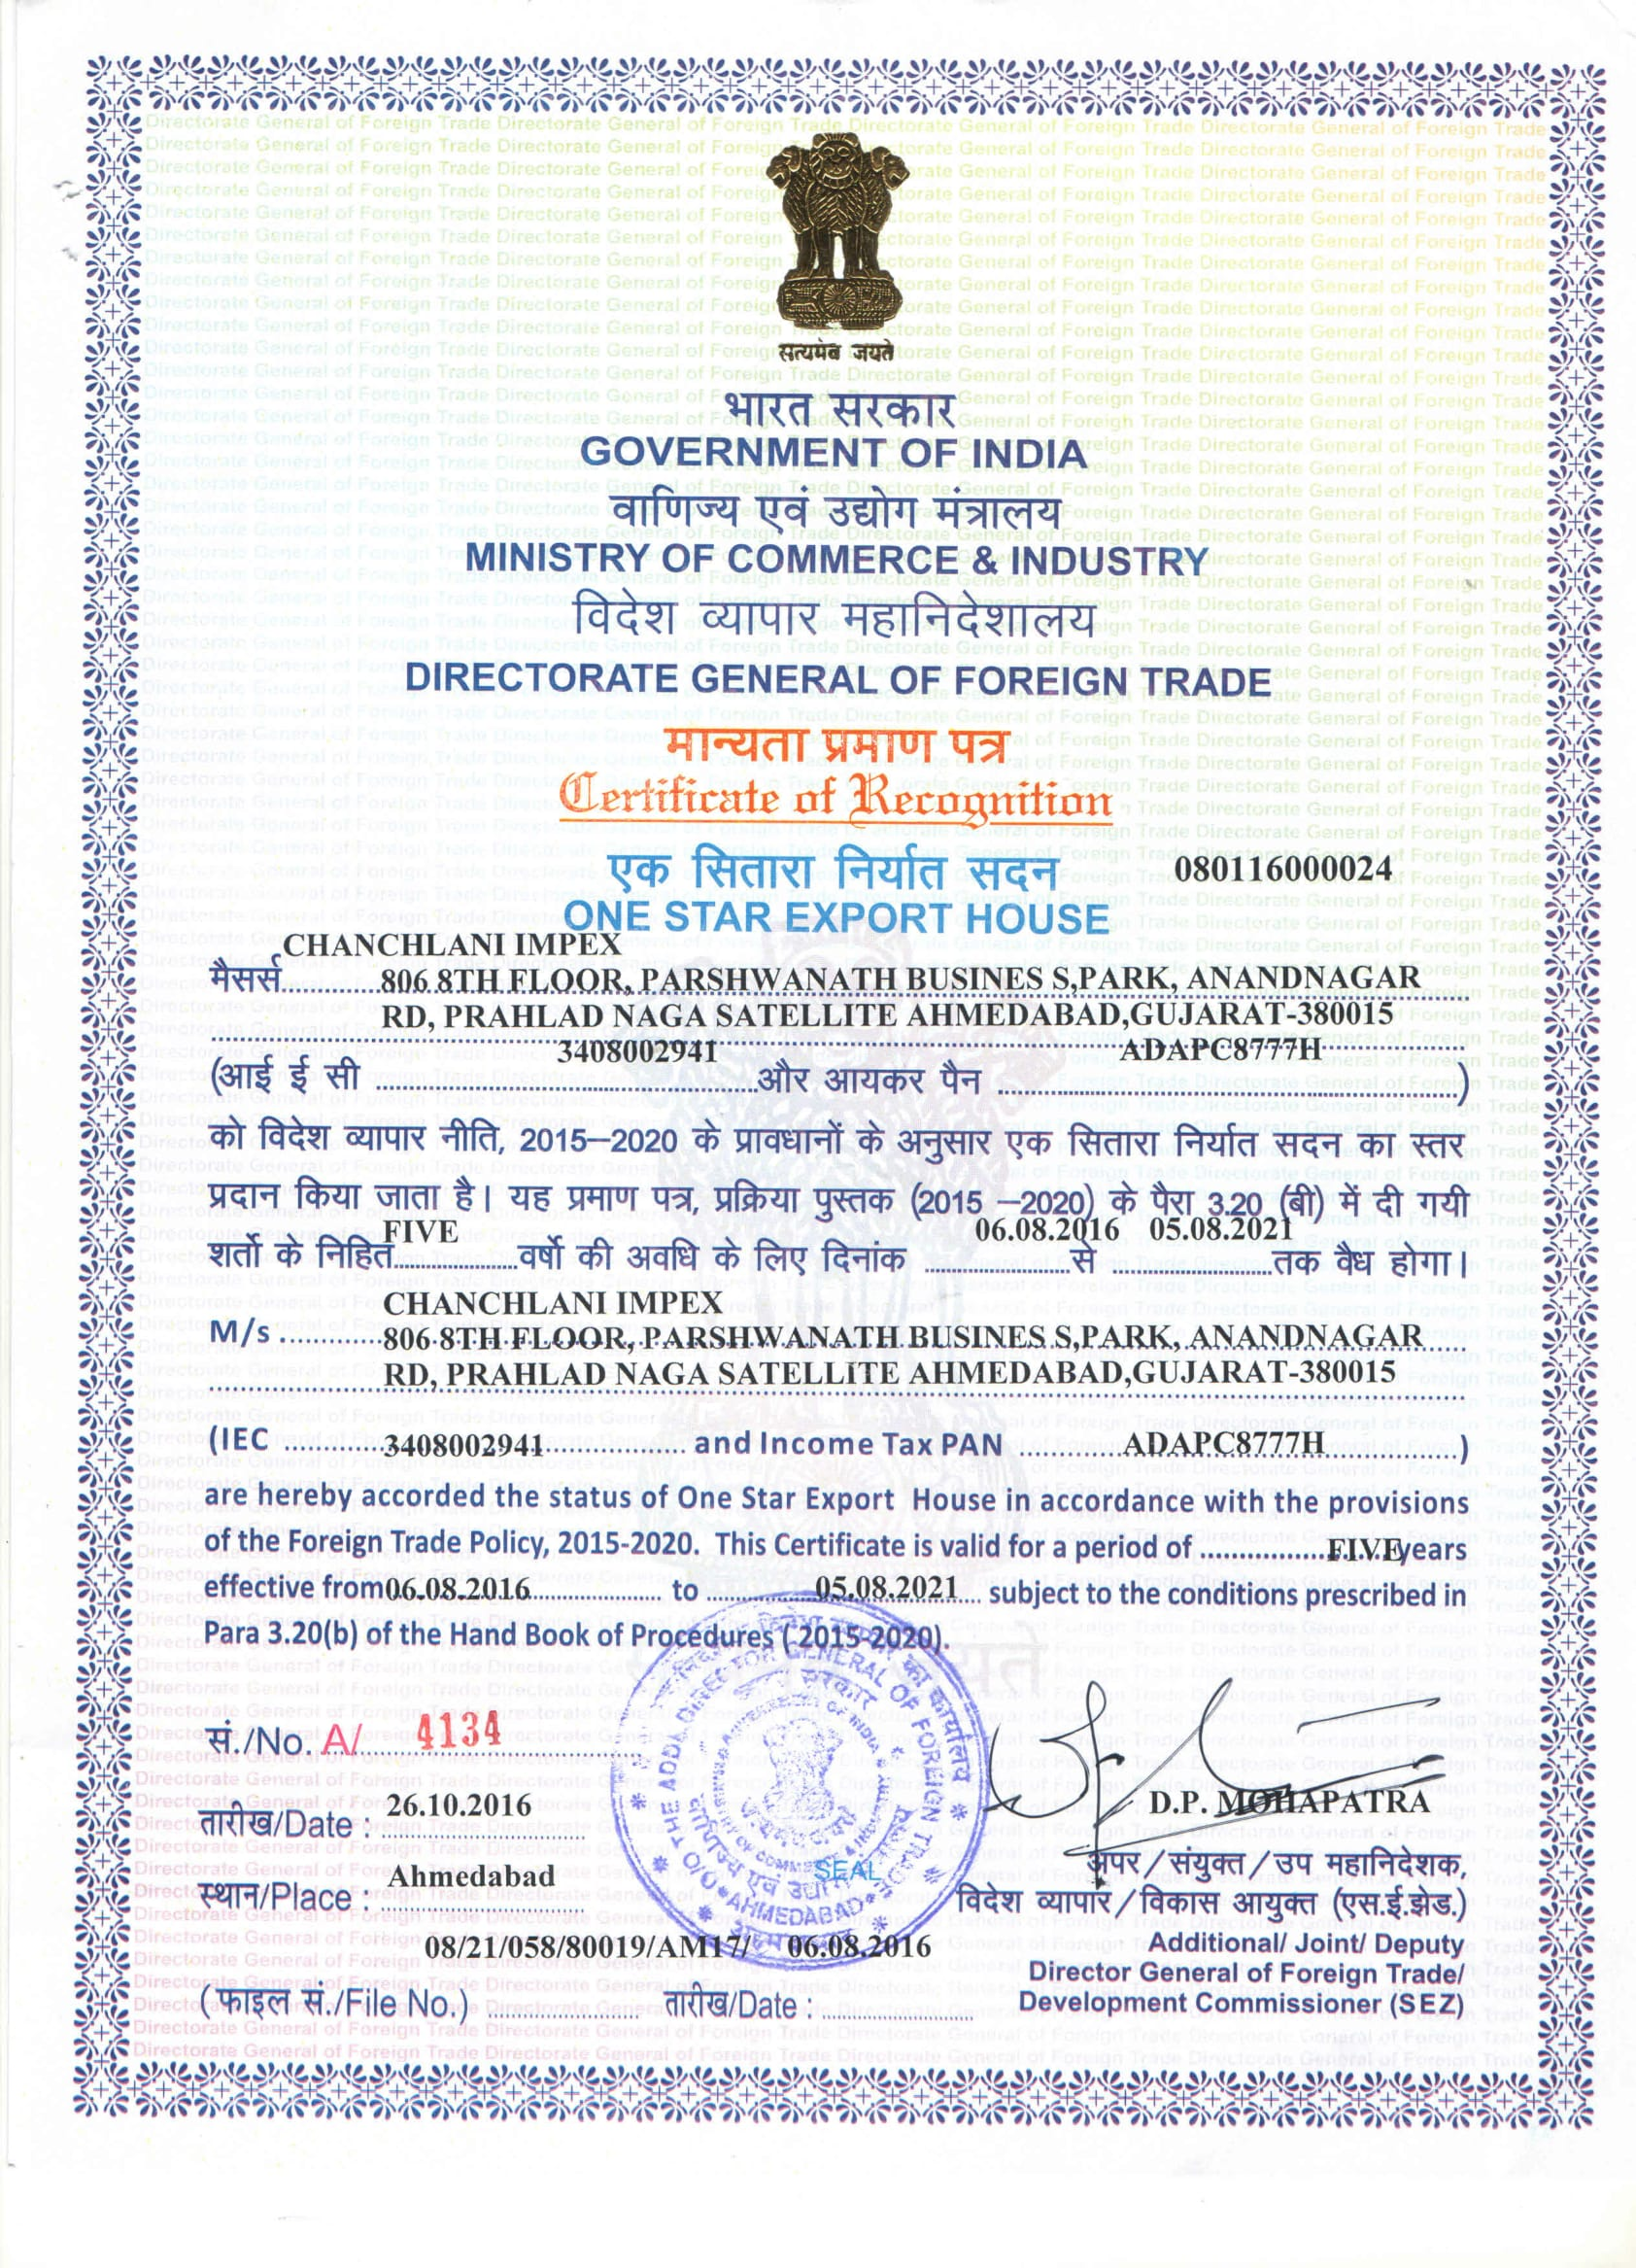 Certification trademark chanchlani impex fieo membership certificate 1betcityfo Gallery